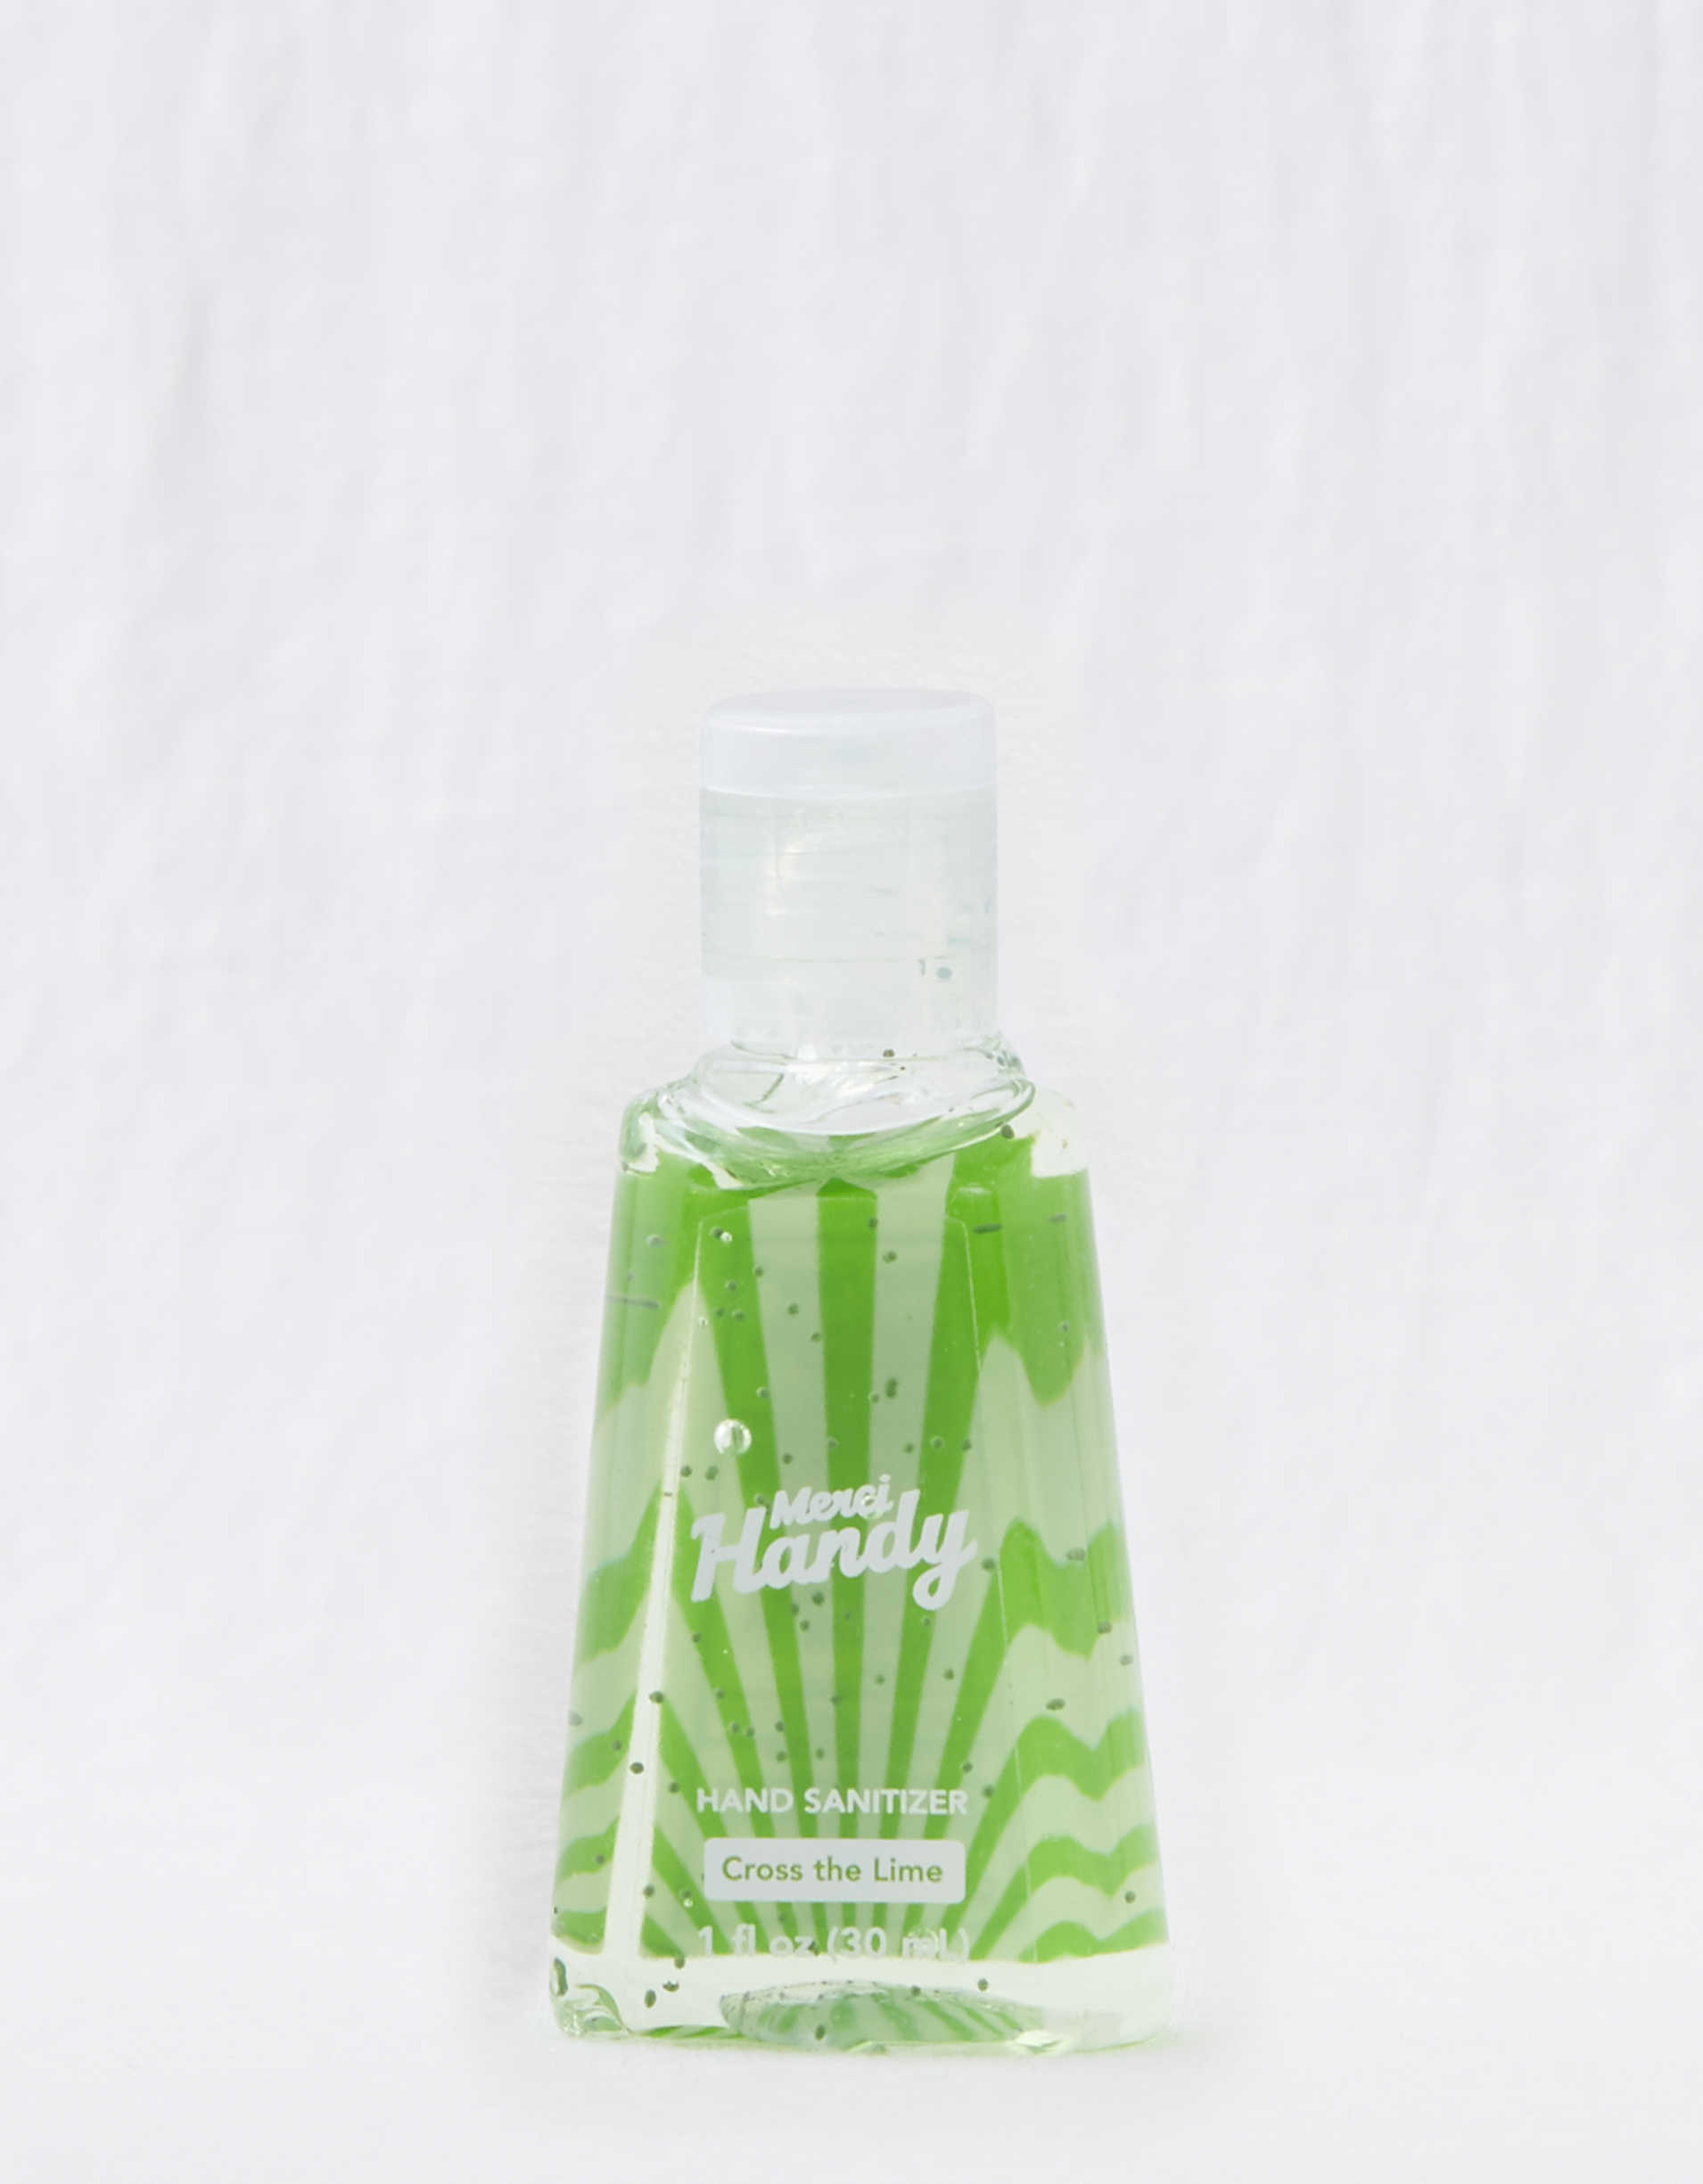 Merci Handy Hand Sanitizer - Cross The Lime